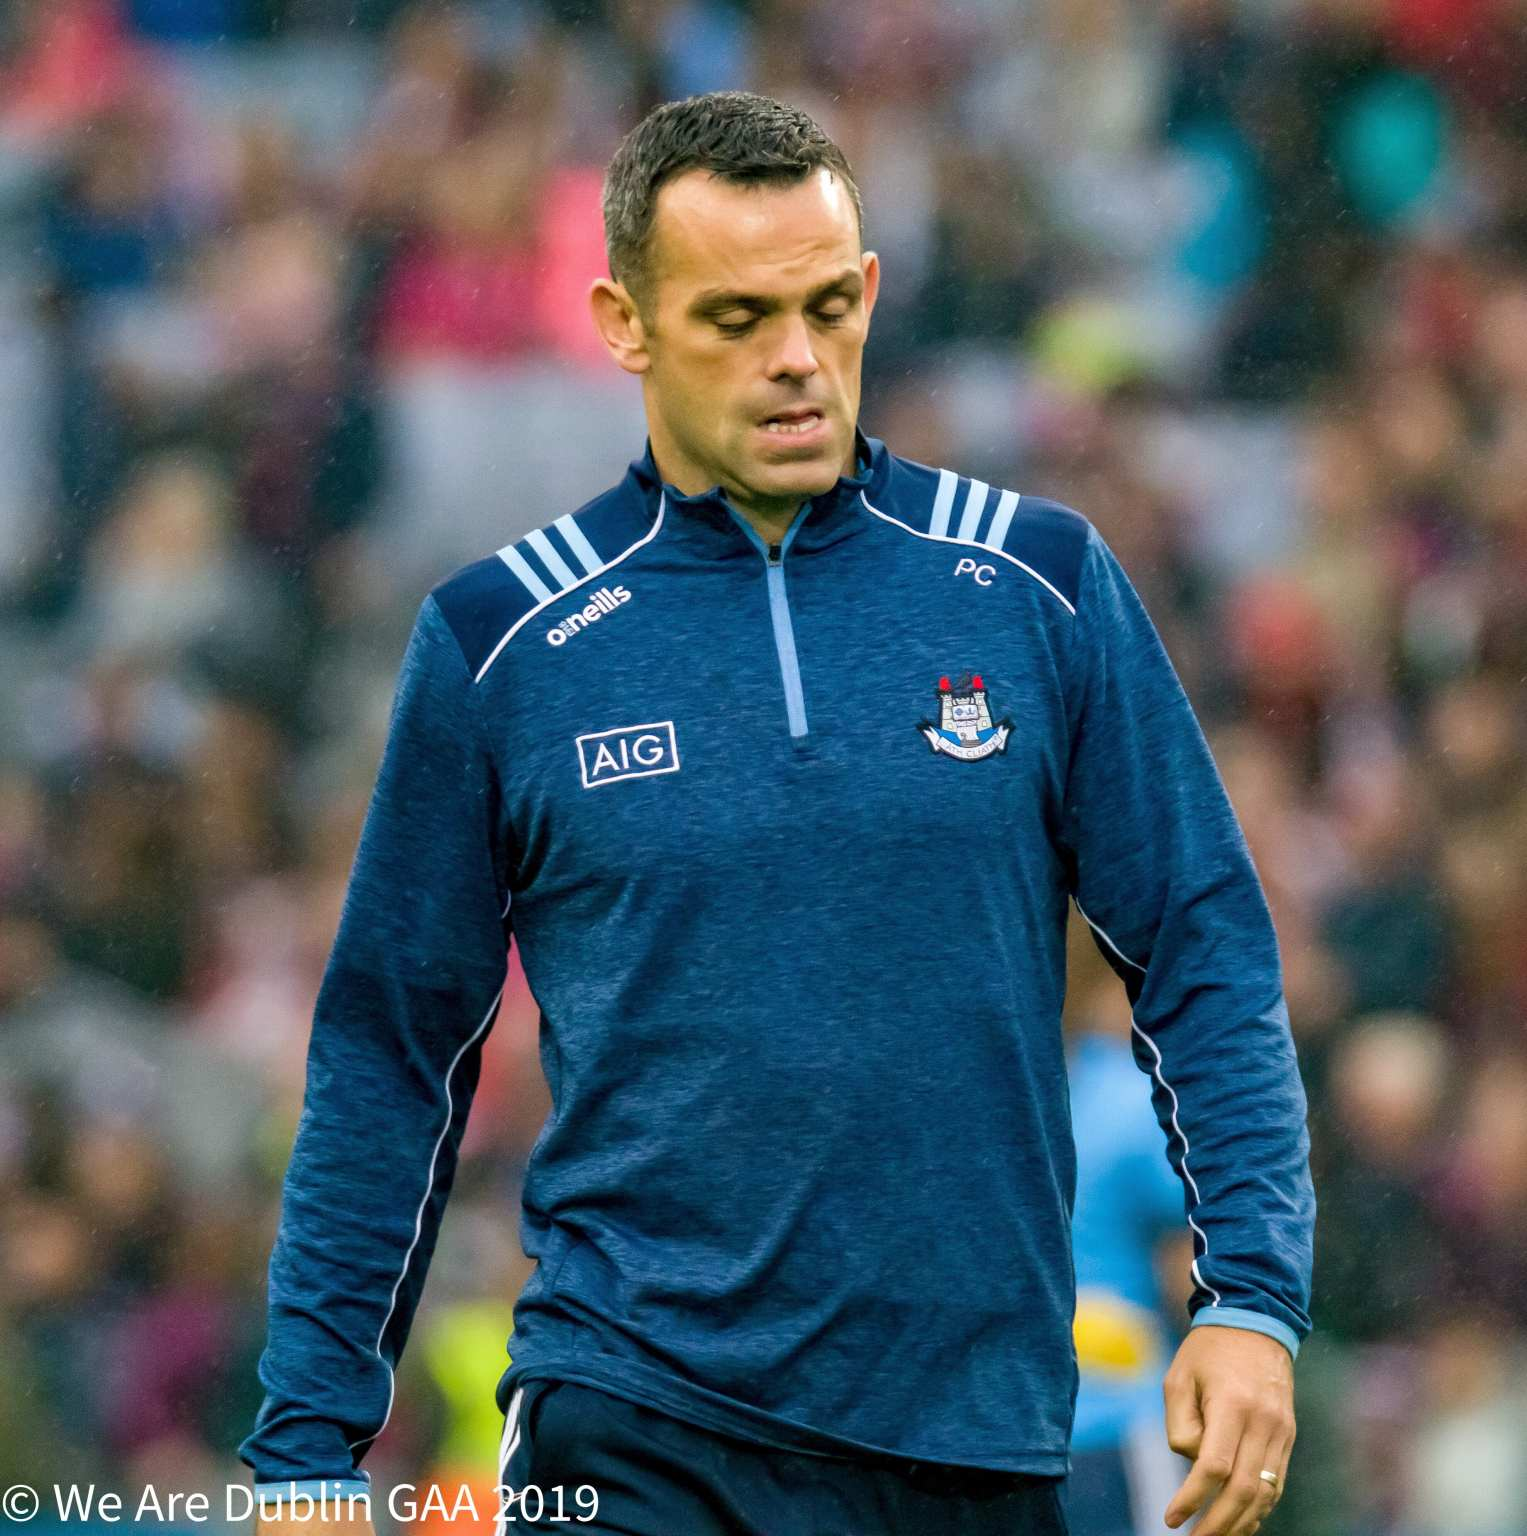 Dublin coach Paul Casey on the Croke Park pitch before the All Ireland Final